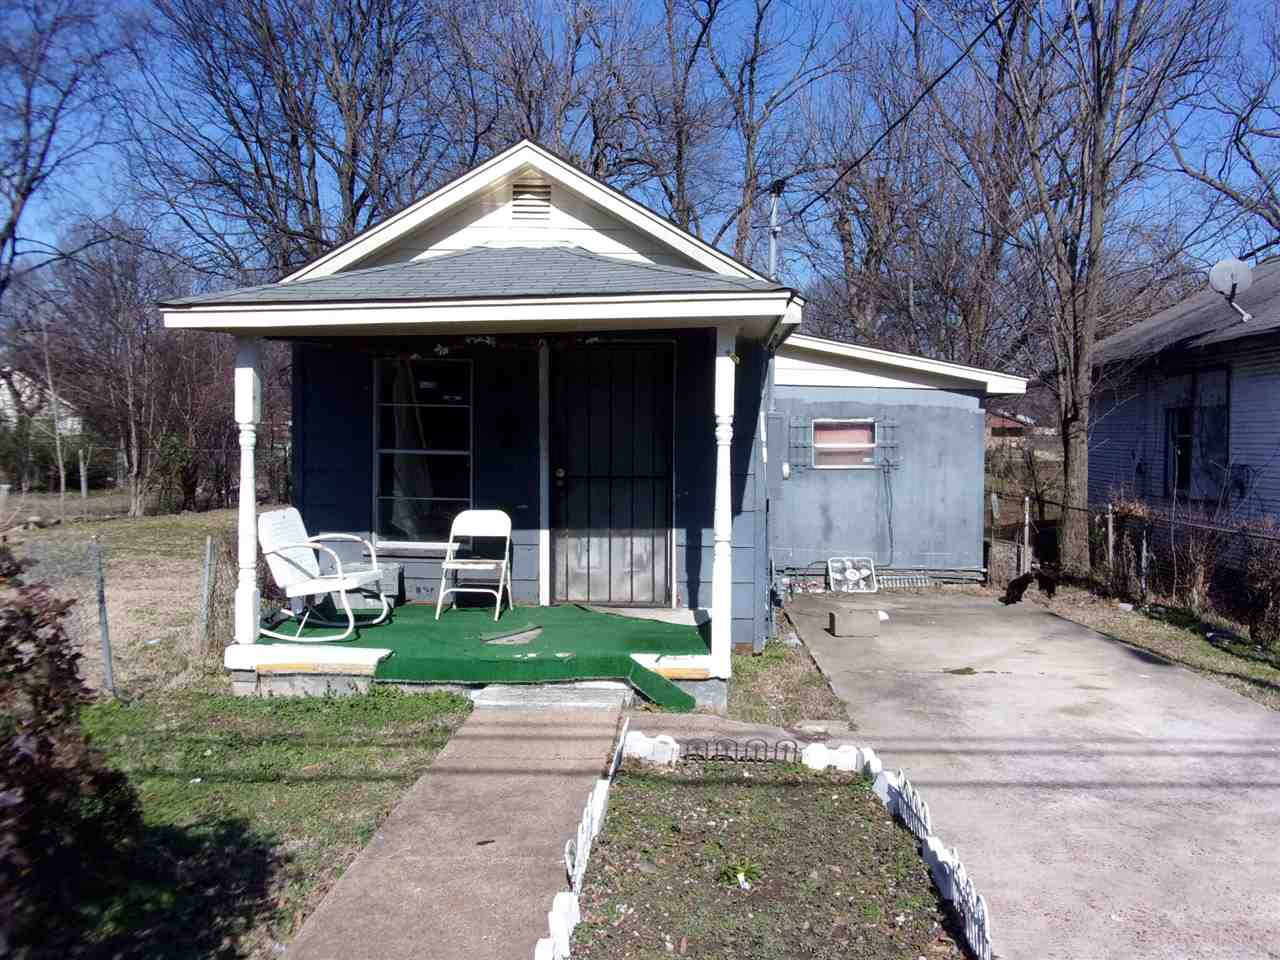 Property for sale at 2496 Winnona Ave, Memphis,  TN 38108